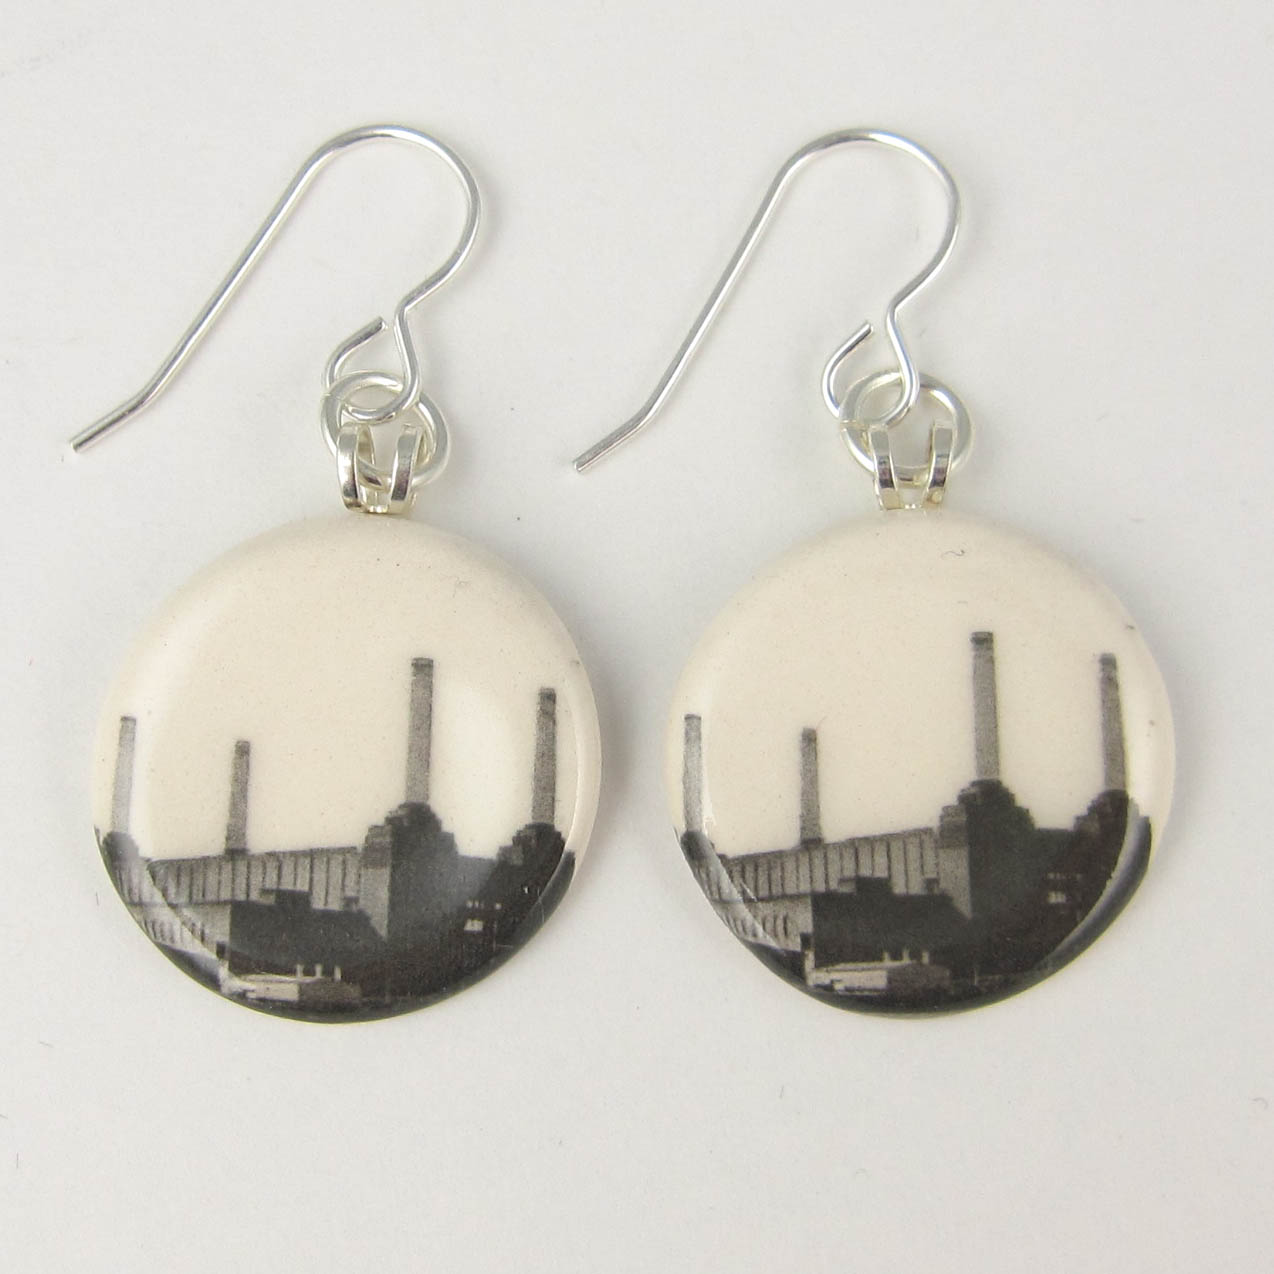 View London Battersea Power Station earrings